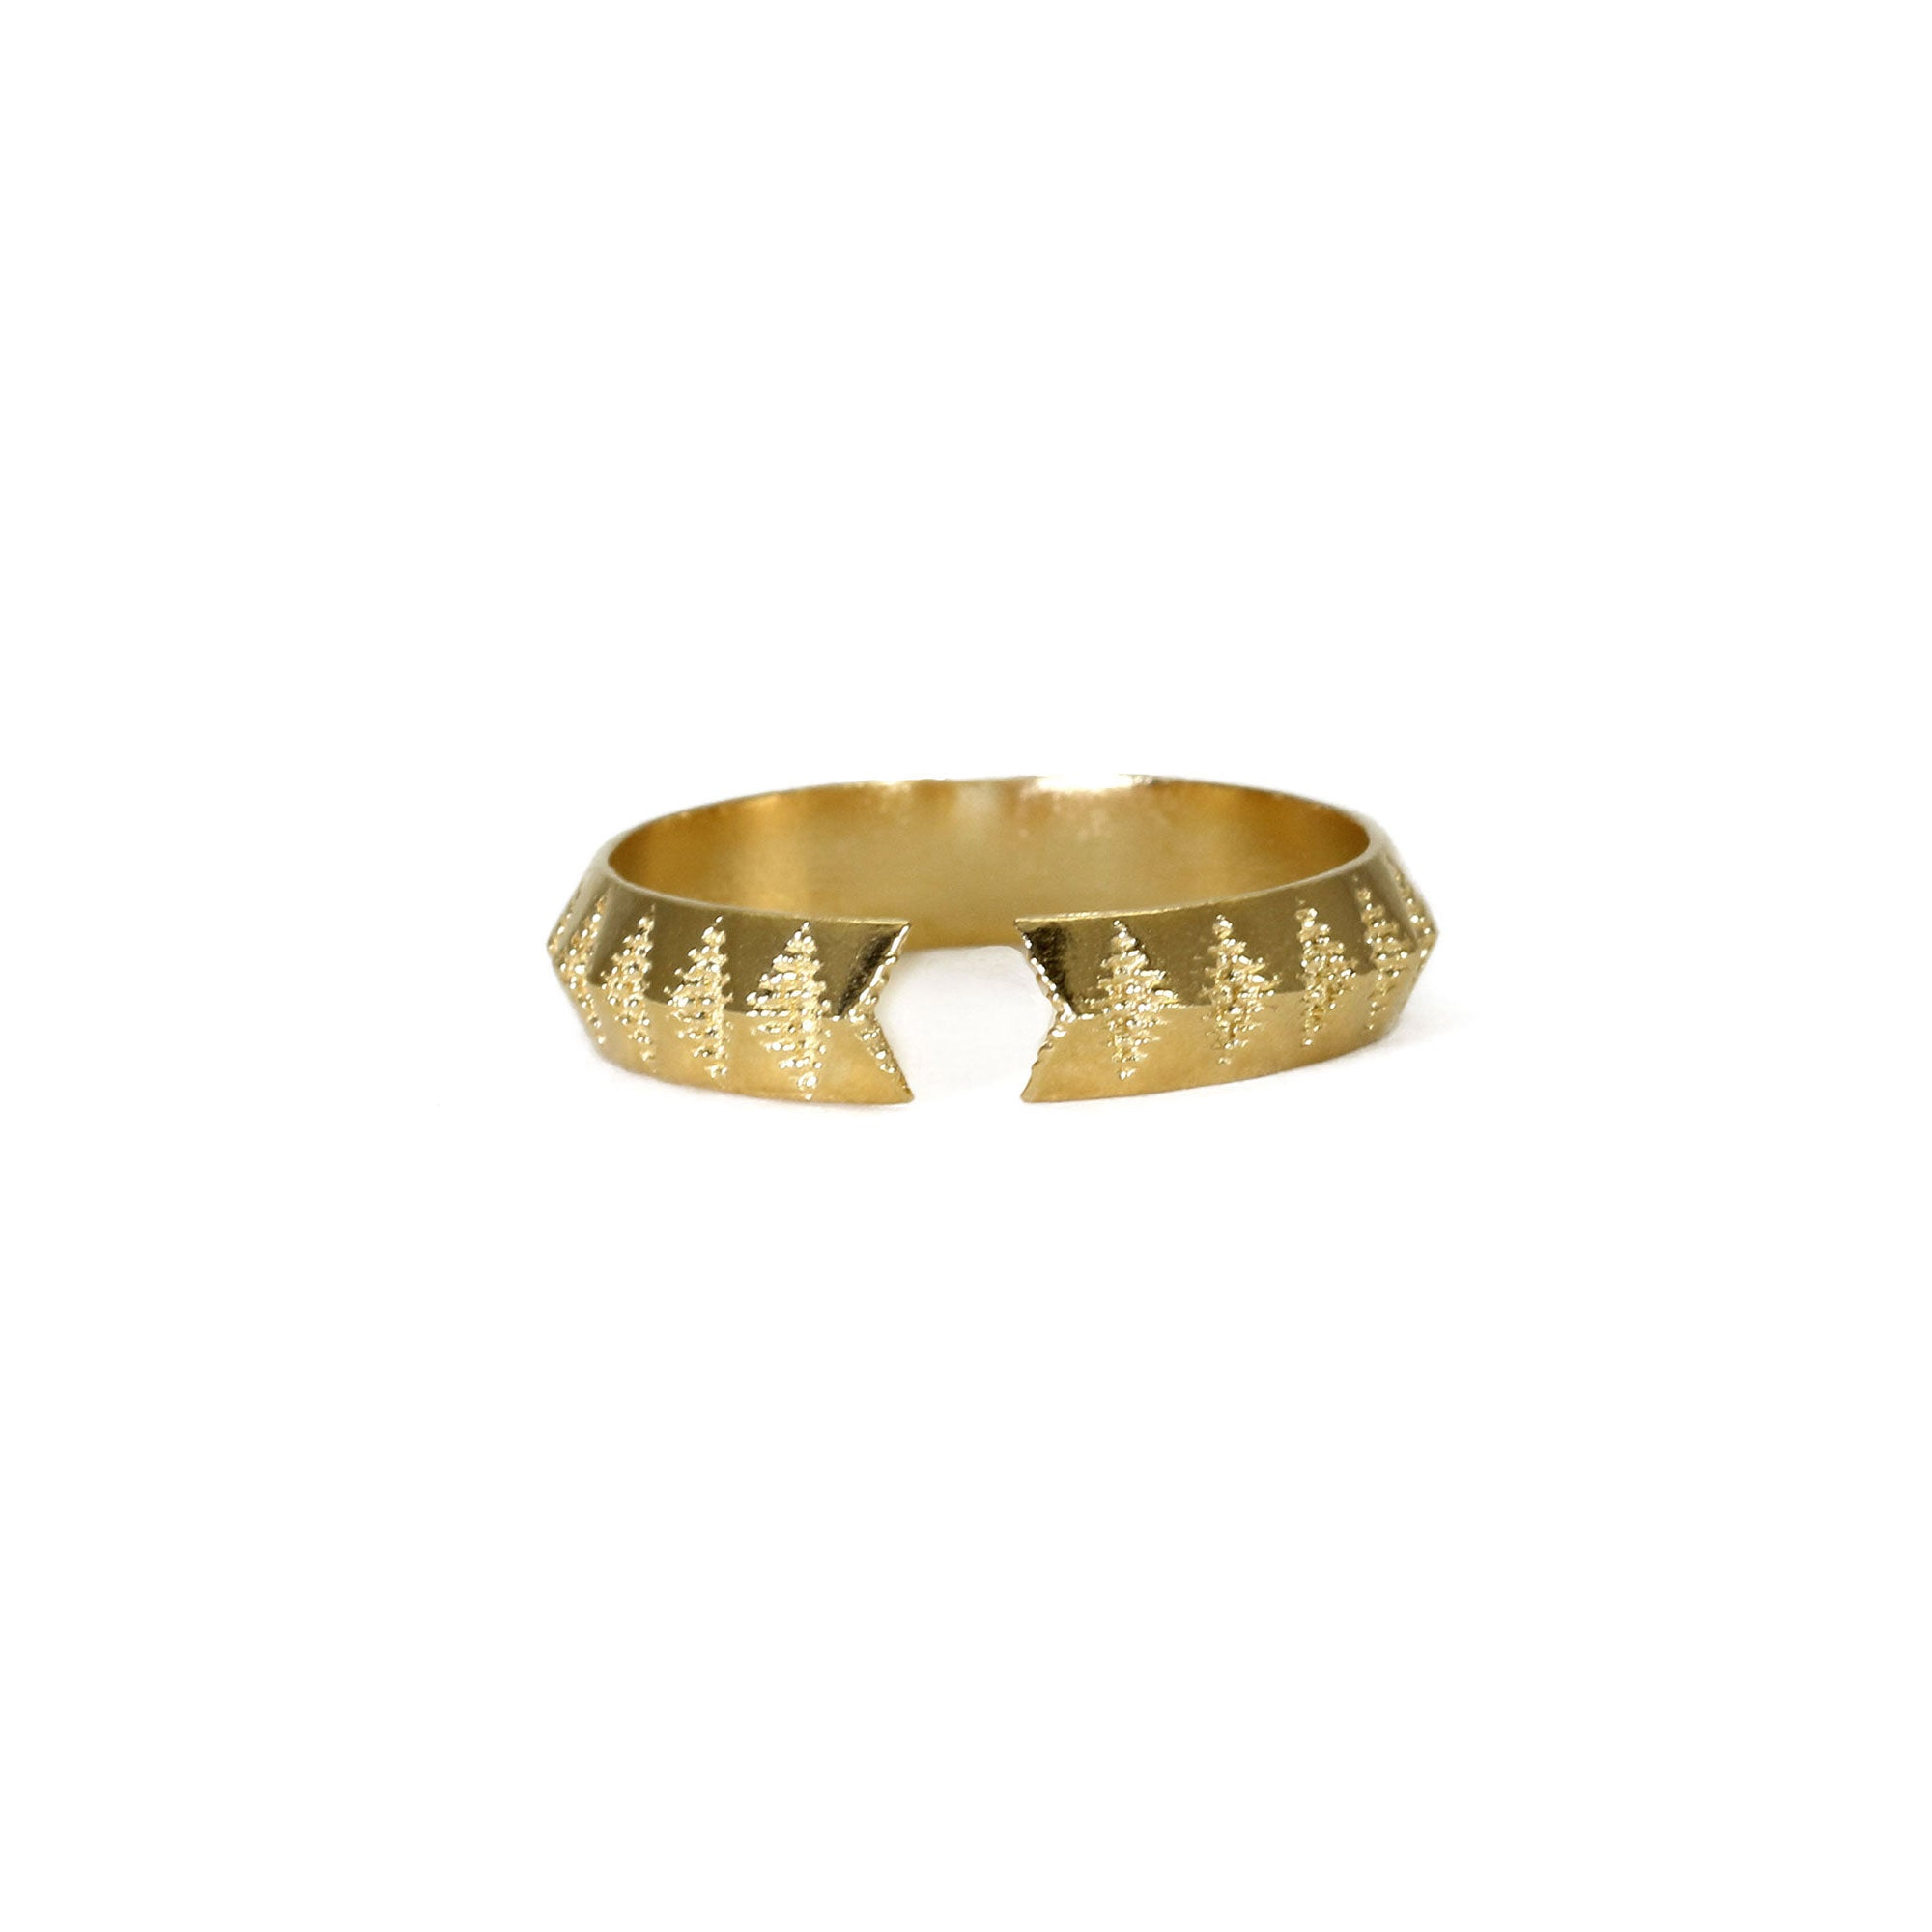 Chasm Yellow Gold Open Ring